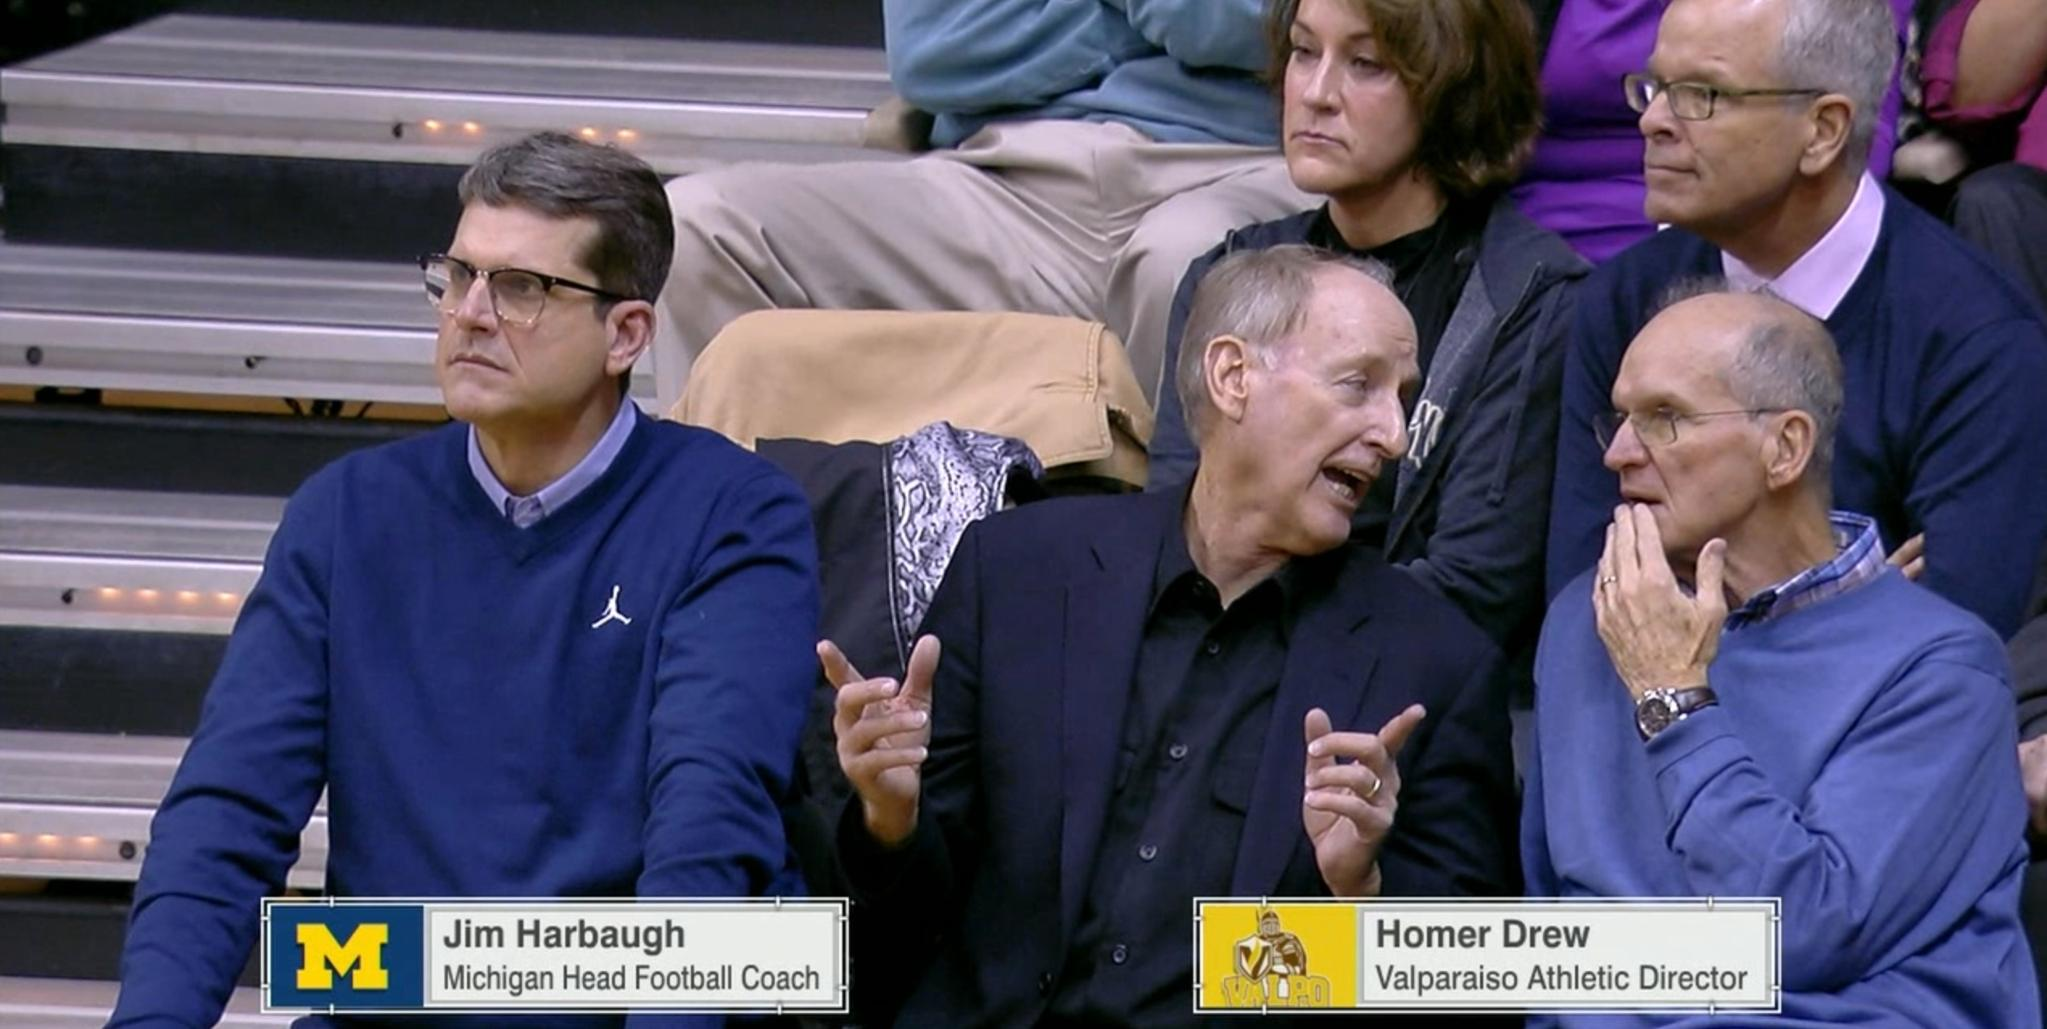 Oh hey, Coach!  Jim Harbaugh is taking in the Kentucky-Vanderbilt game. https://t.co/7fBJjuGUEI